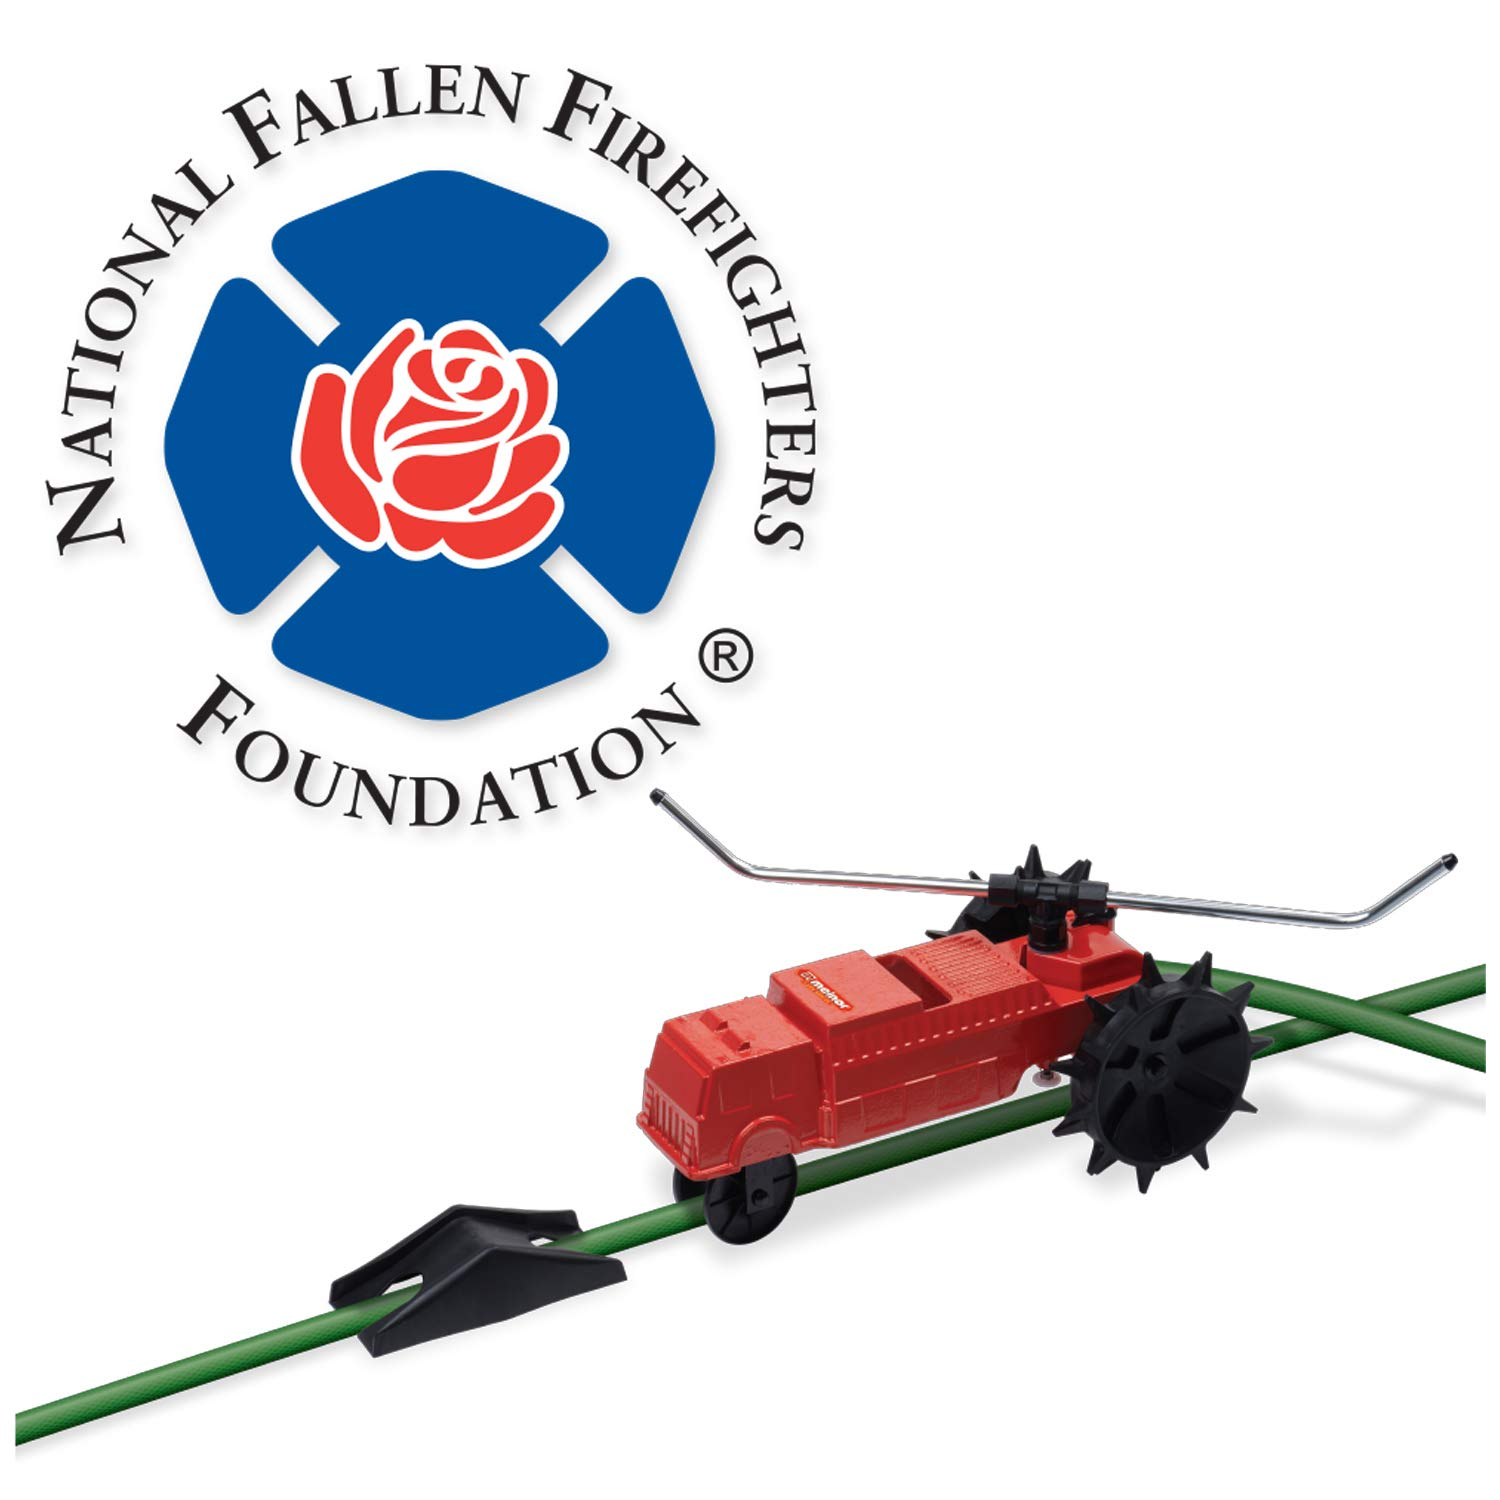 Melnor 4501 Traveling Sprinkler Lawn Rescue-13,500 sq. ft. Coverage Variable Speed Control with Adjustable Spray Arms by Melnor